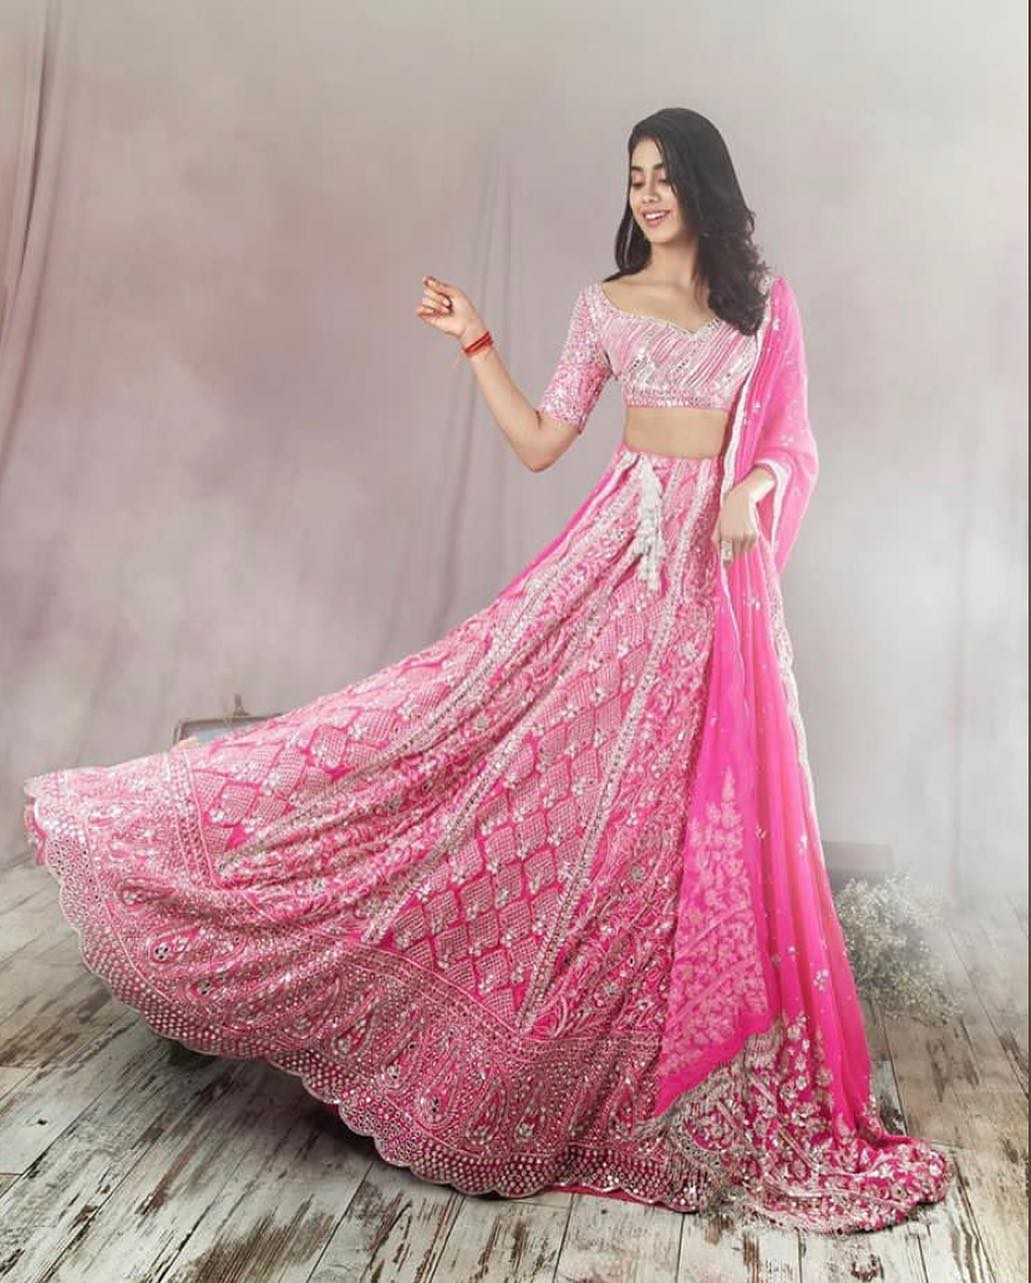 Pretty in pink: Light Lehenga Designs for Bride & Bridesmaid